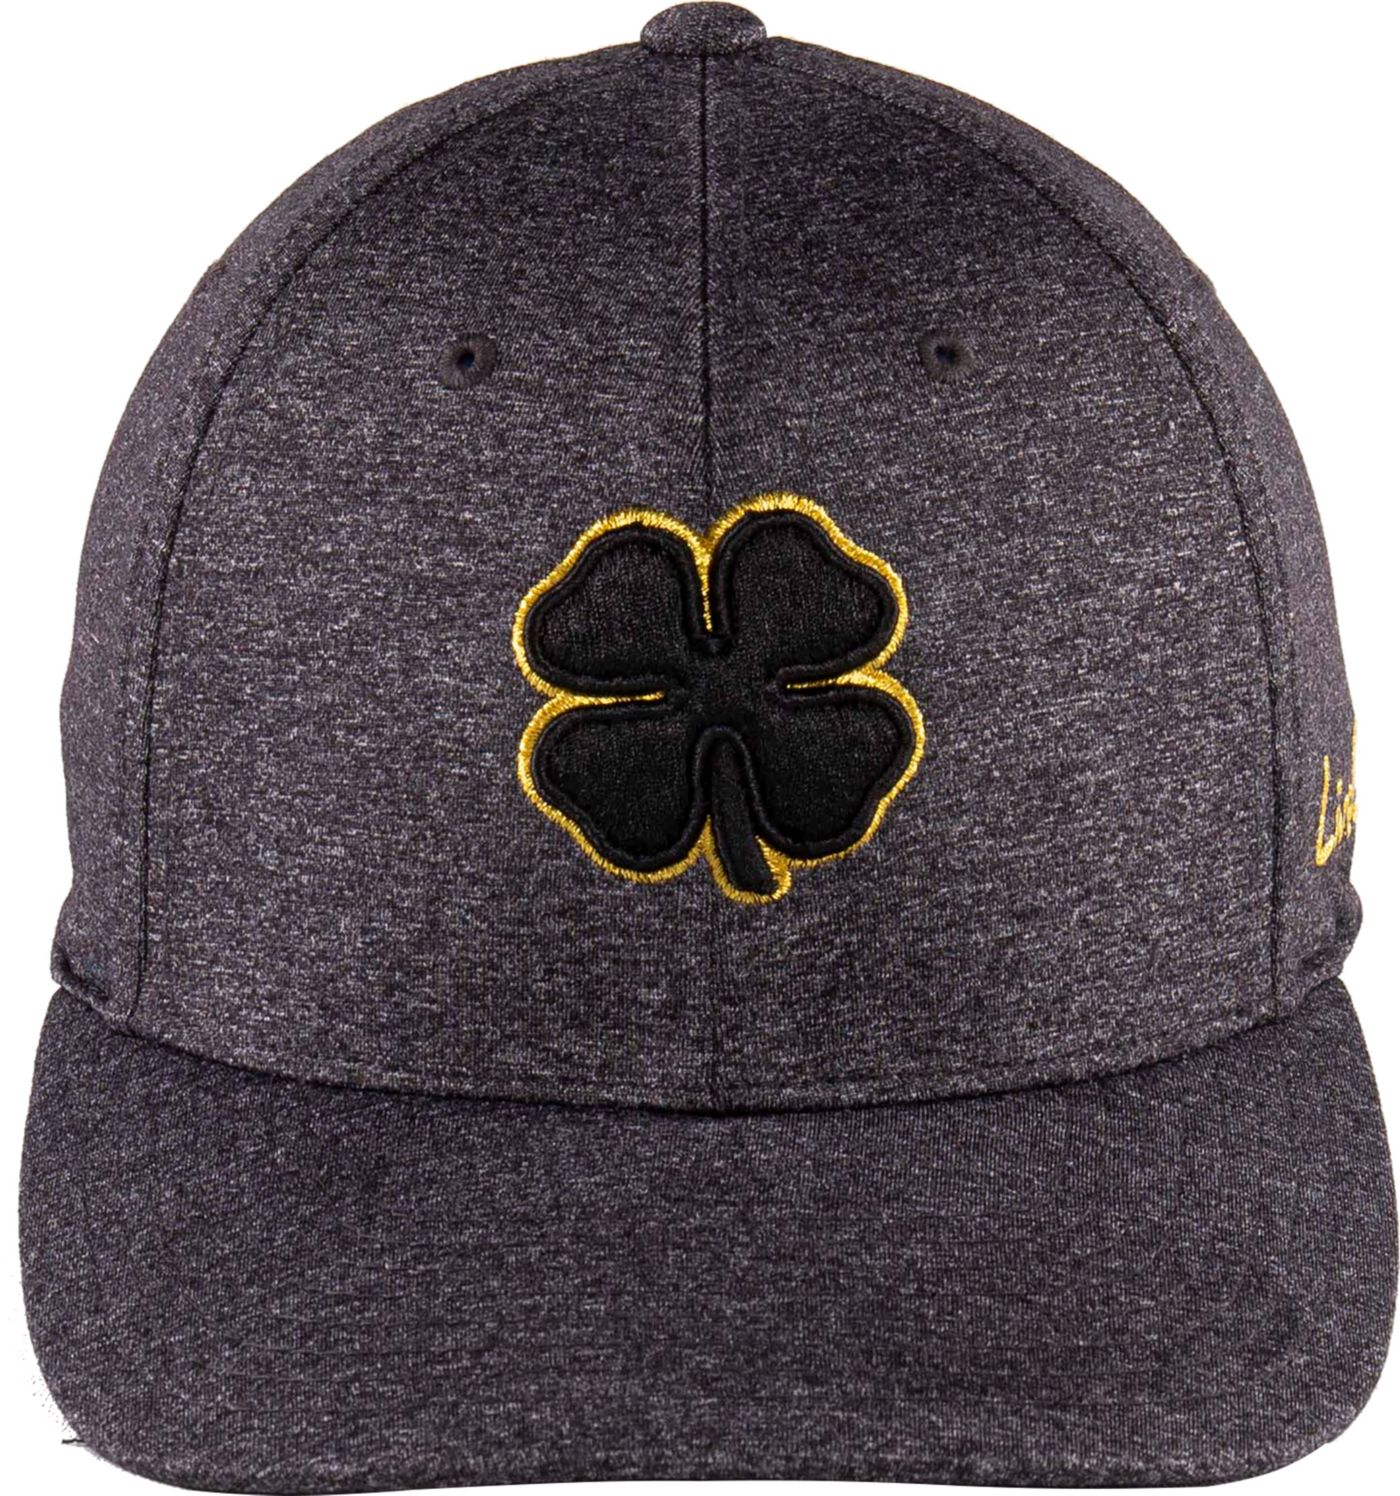 Black Clover + Rawlings Gold Glove Fitted Hat